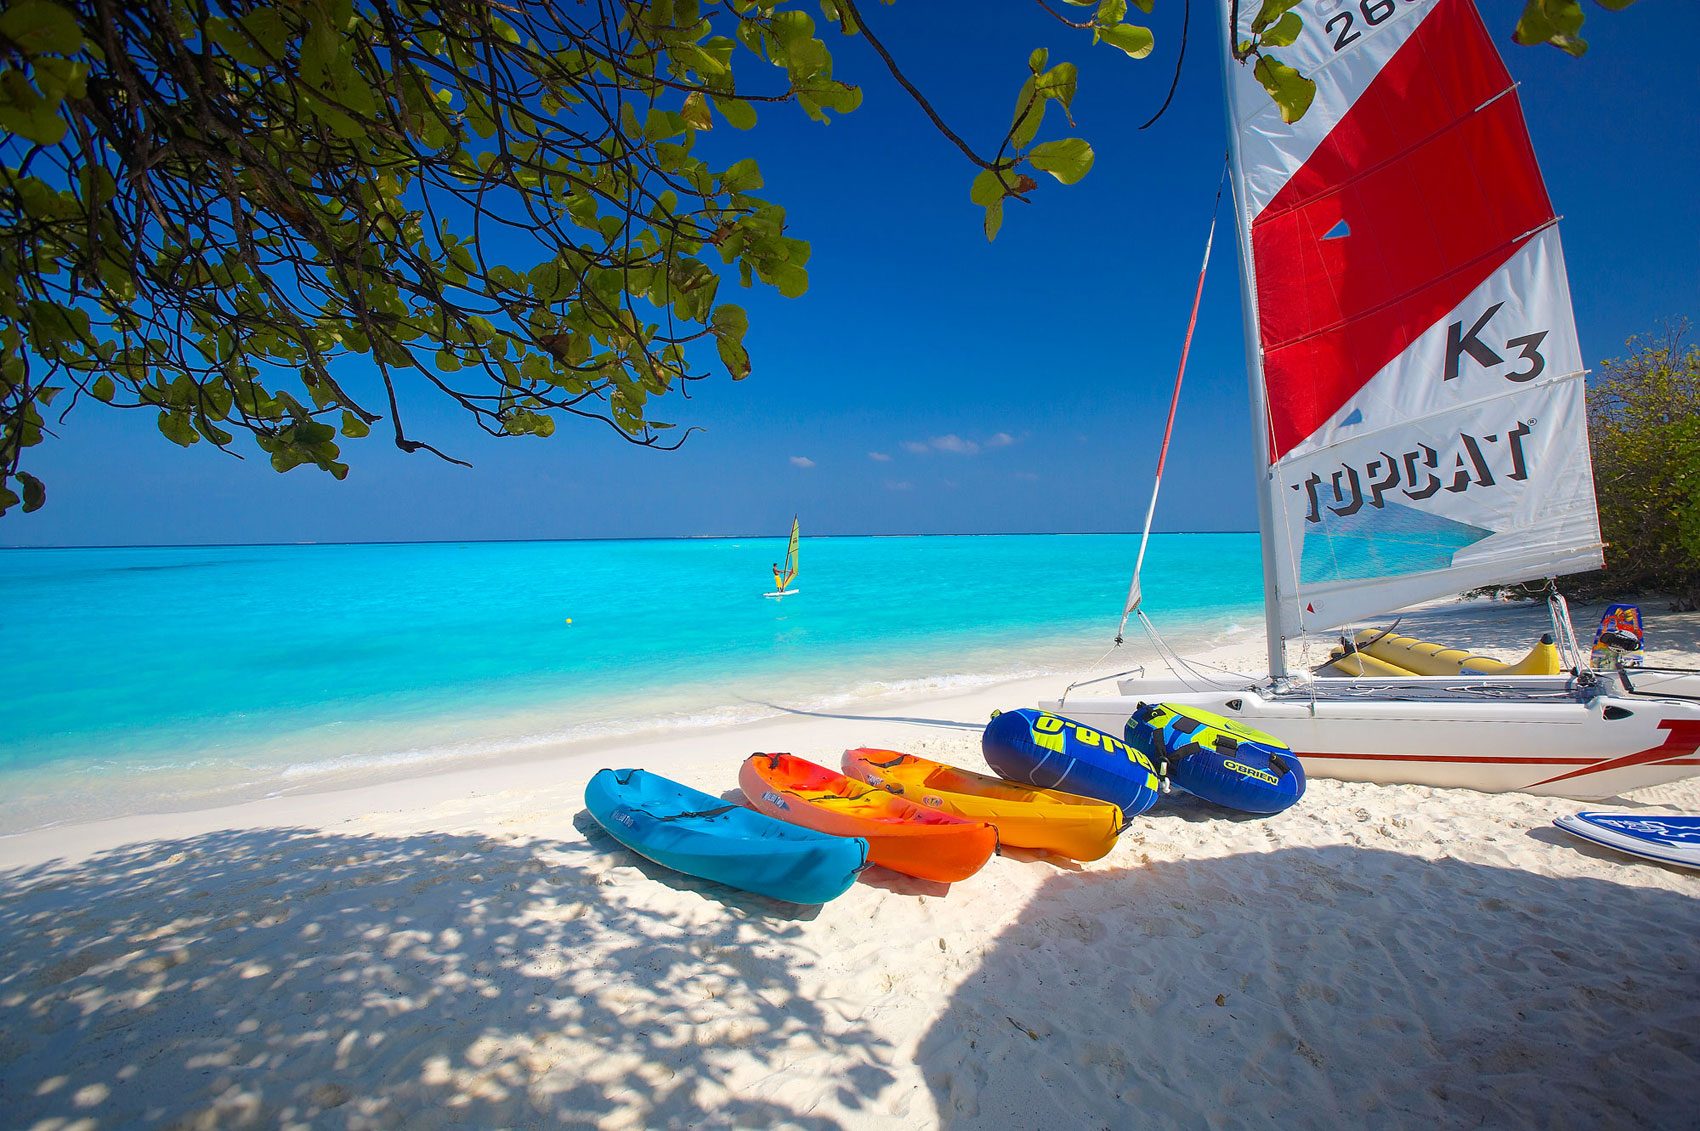 Island-Hideaway-at-Dhonakulhi-Maldives-Spa-Resort-Marina-11